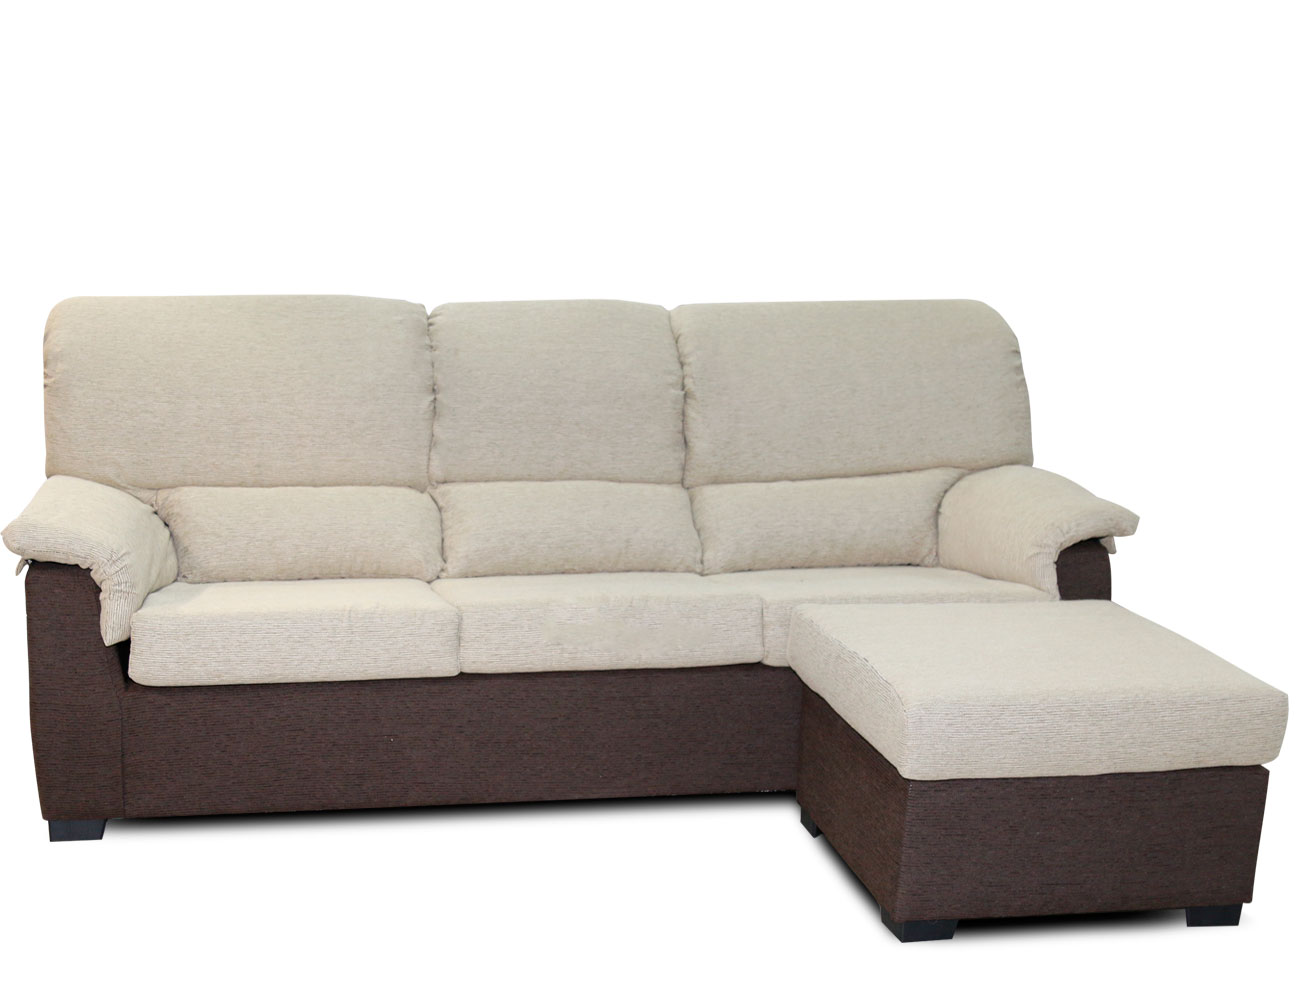 Sofá chaiselongue barato con puf reversible (15285) | Factory del ...